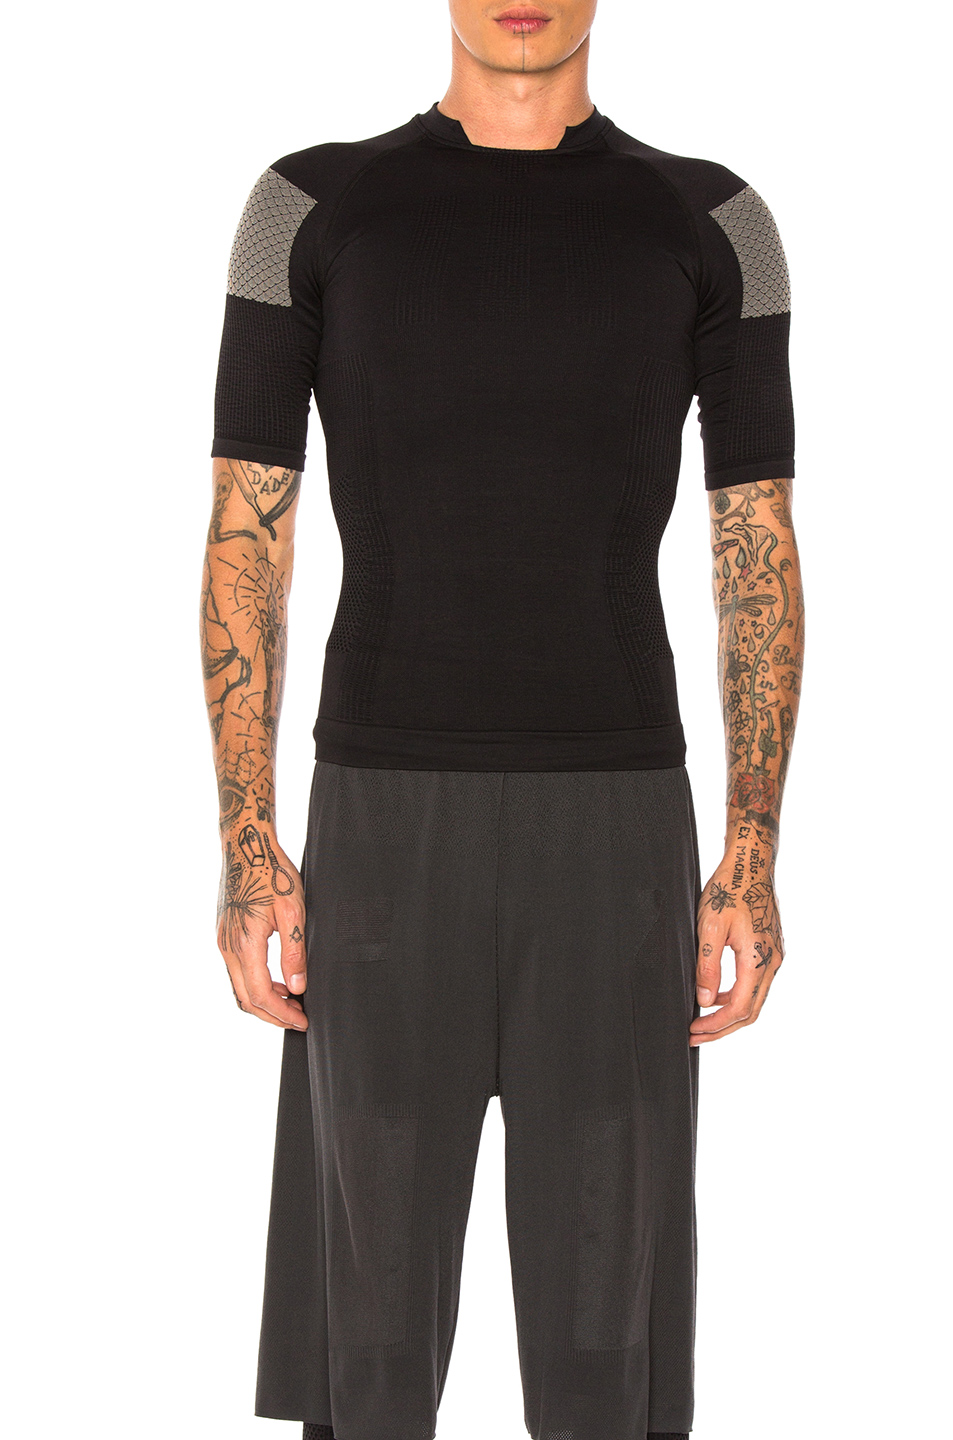 adidas Day One Compression Tee in Black